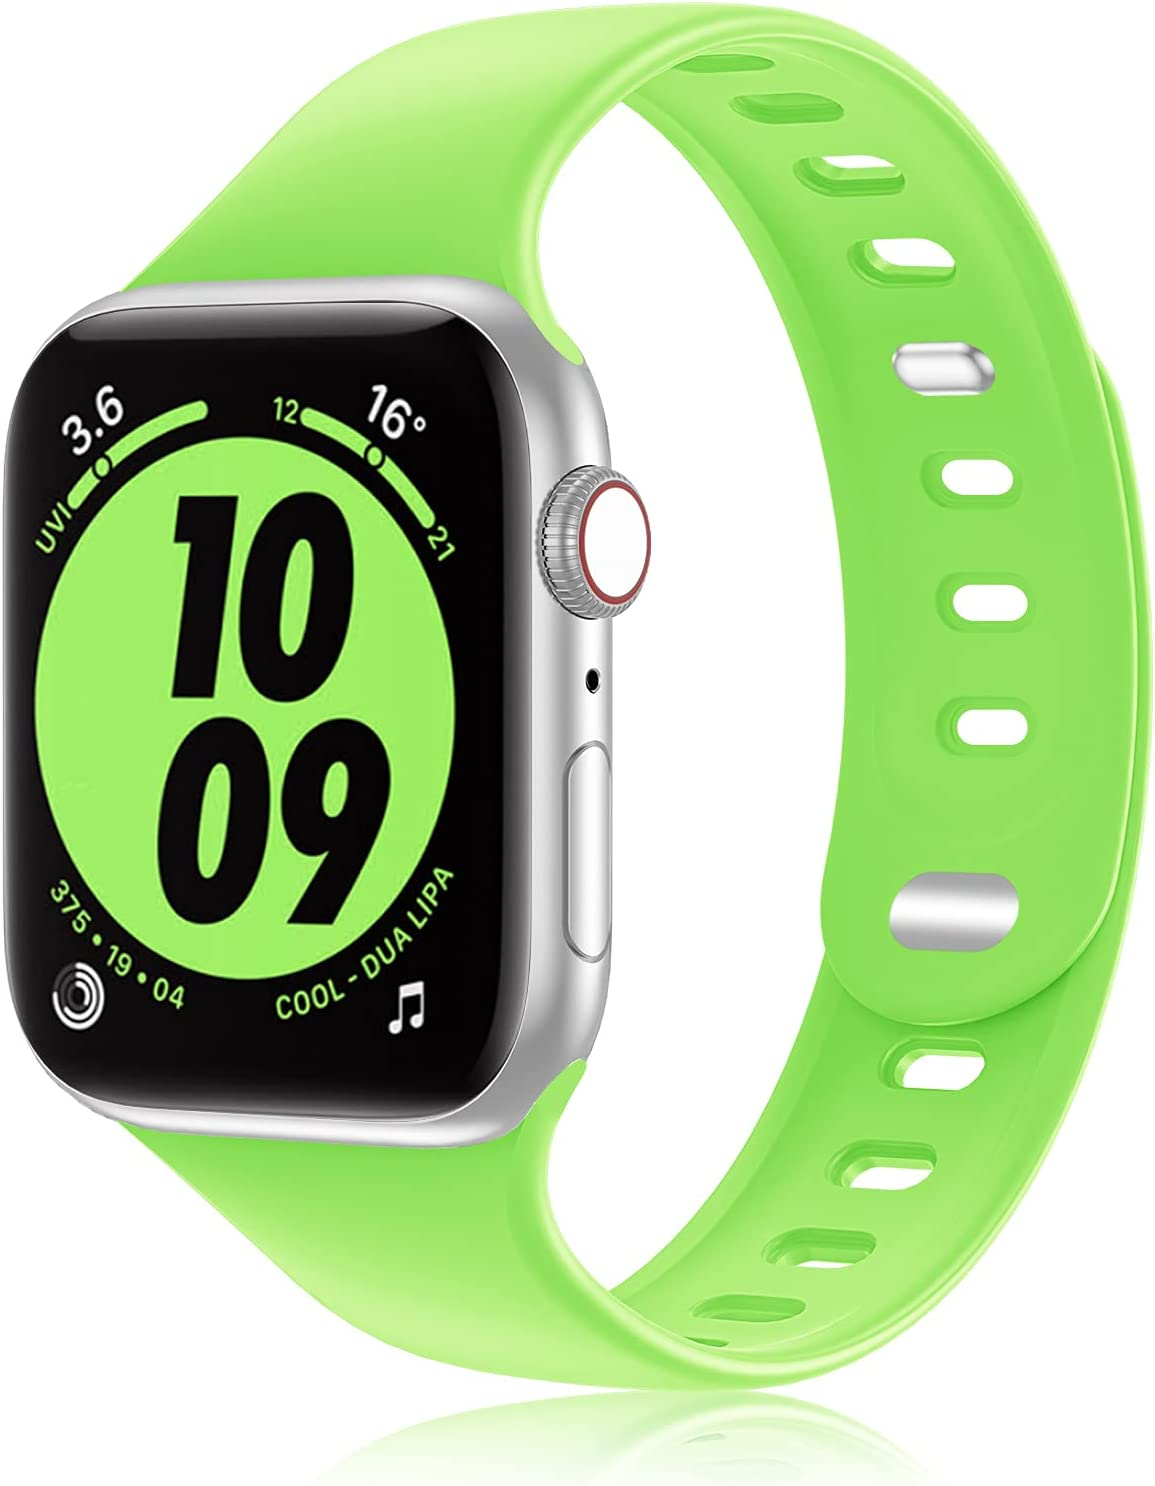 iWabcertoo Sport Silicone Band Compatible with Apple Watch Band 38MM 40MM 42MM 44MM Women and Men,Soft Silicone Replacement Strap Band for iWatch Series 6 5 4 3 2 1 SE